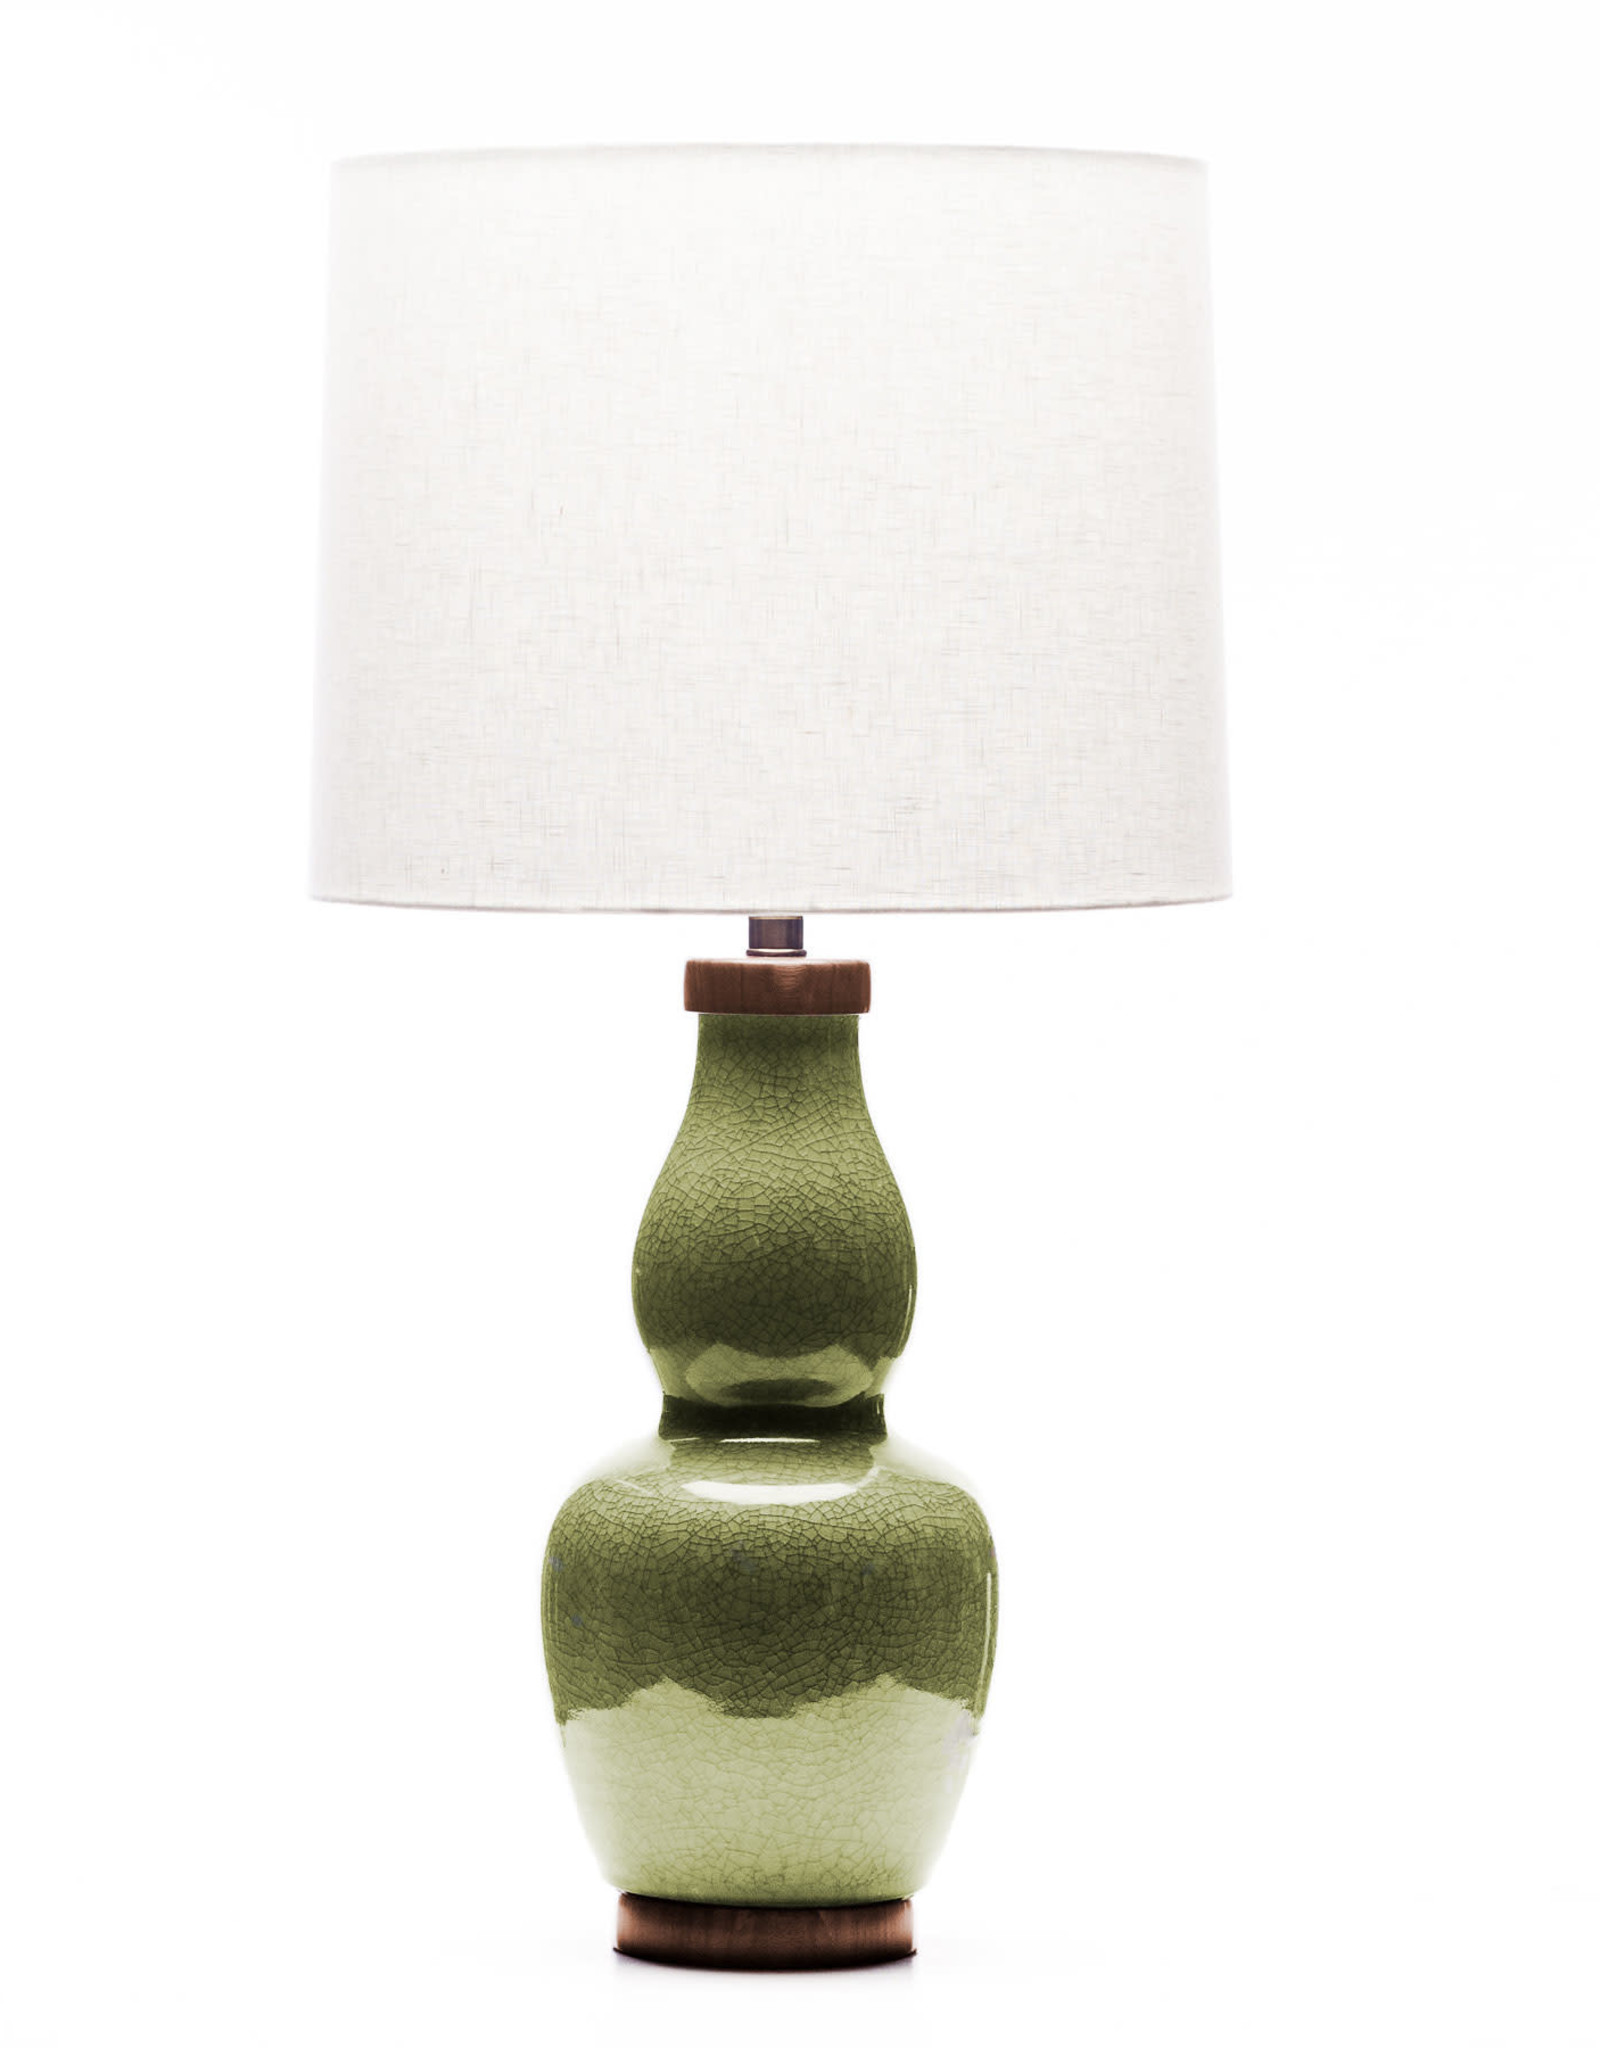 Lawrence & Scott Scarlett Porcelain Table Lamp in Celadon Crackle (Walnut)